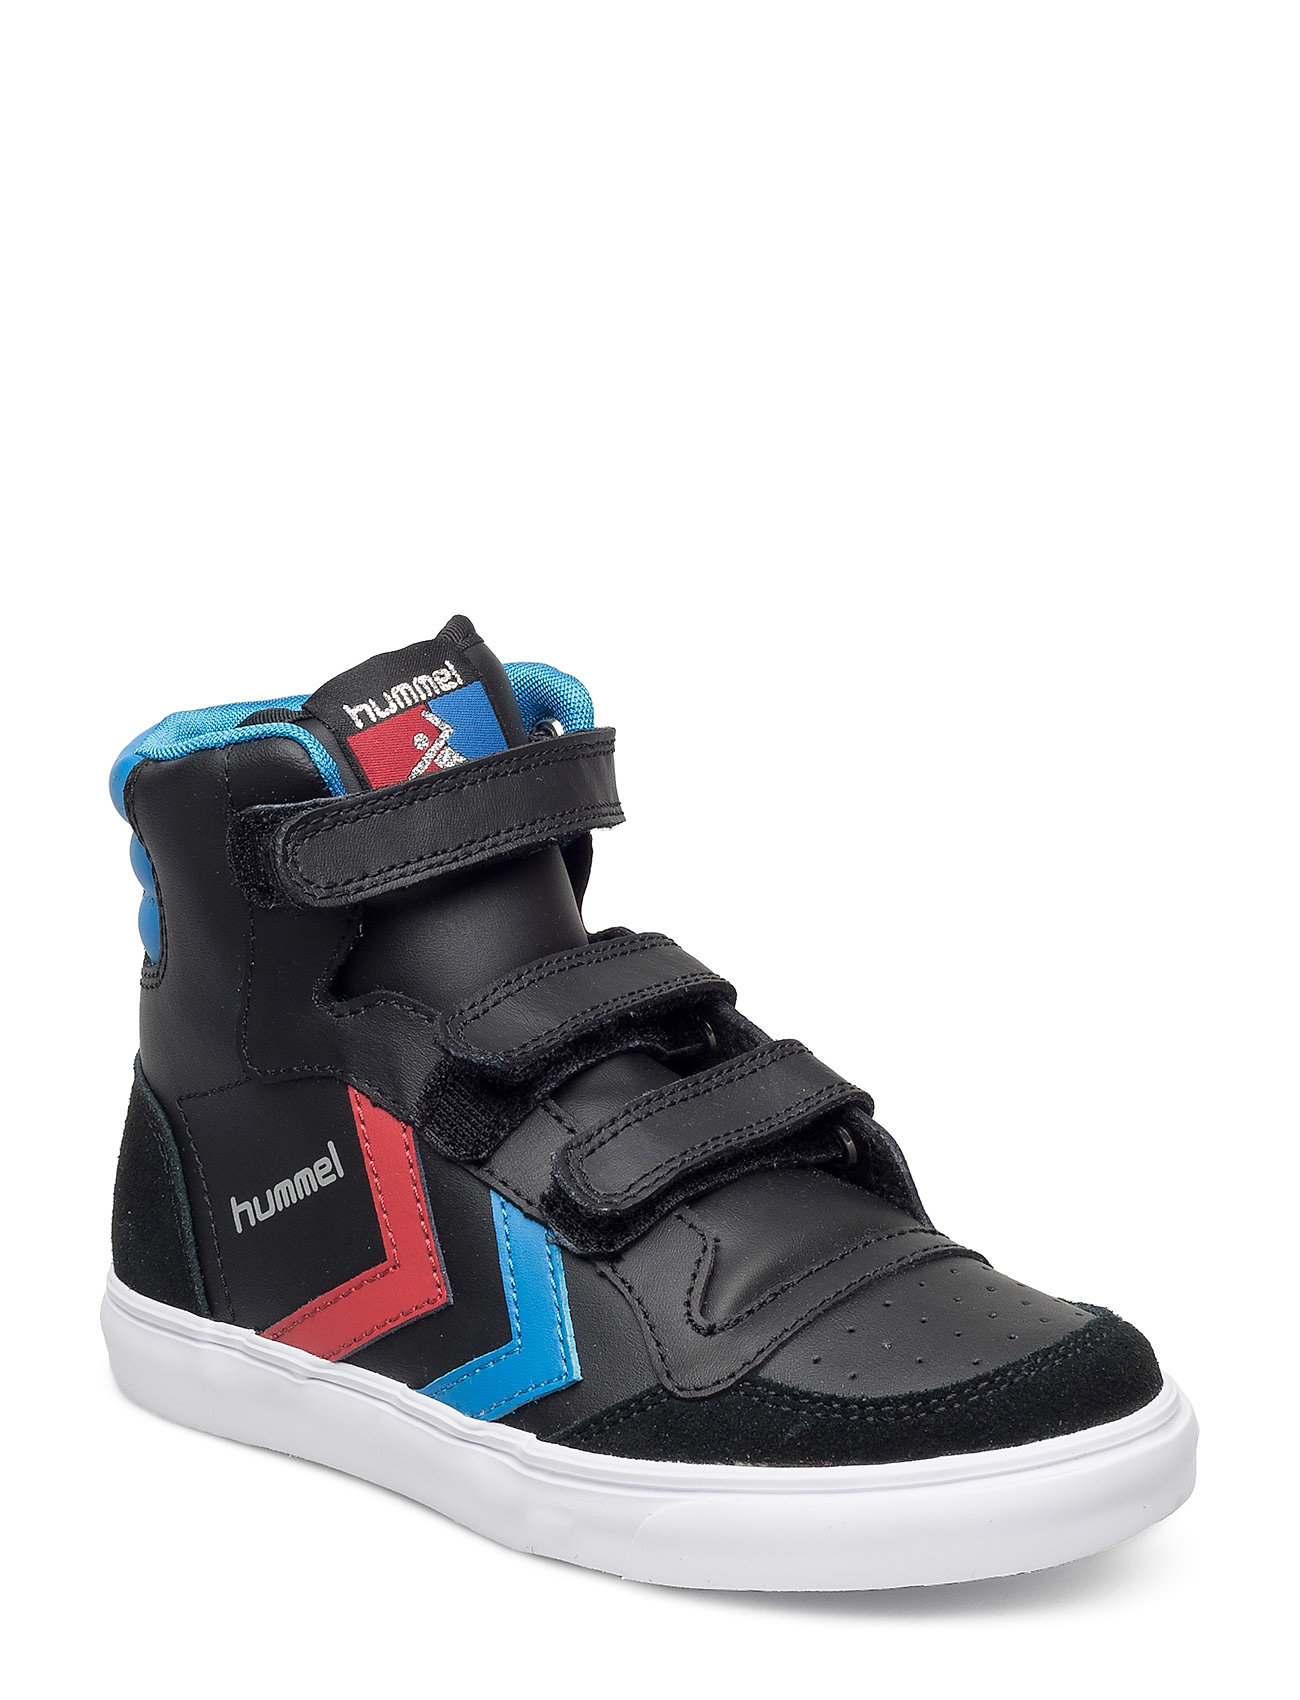 Hummel HUMMEL STADIL JR LEATHER HIGH - BLACK/BLUE/RED/GUM